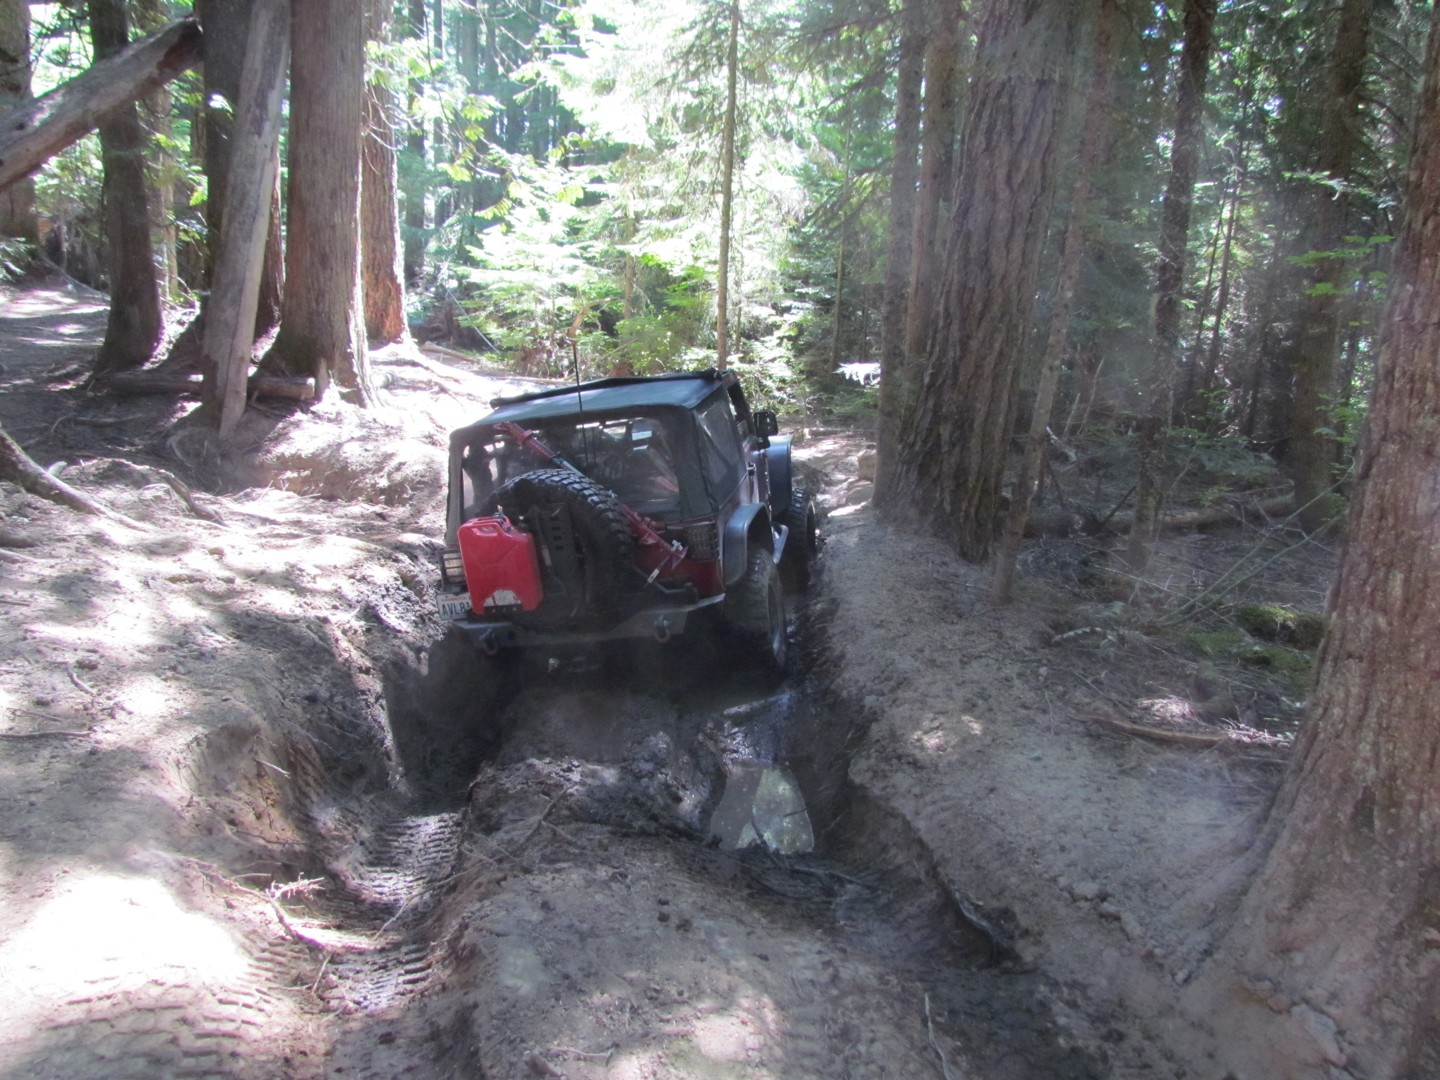 Naches Trail - Waypoint 4: Mud Hole